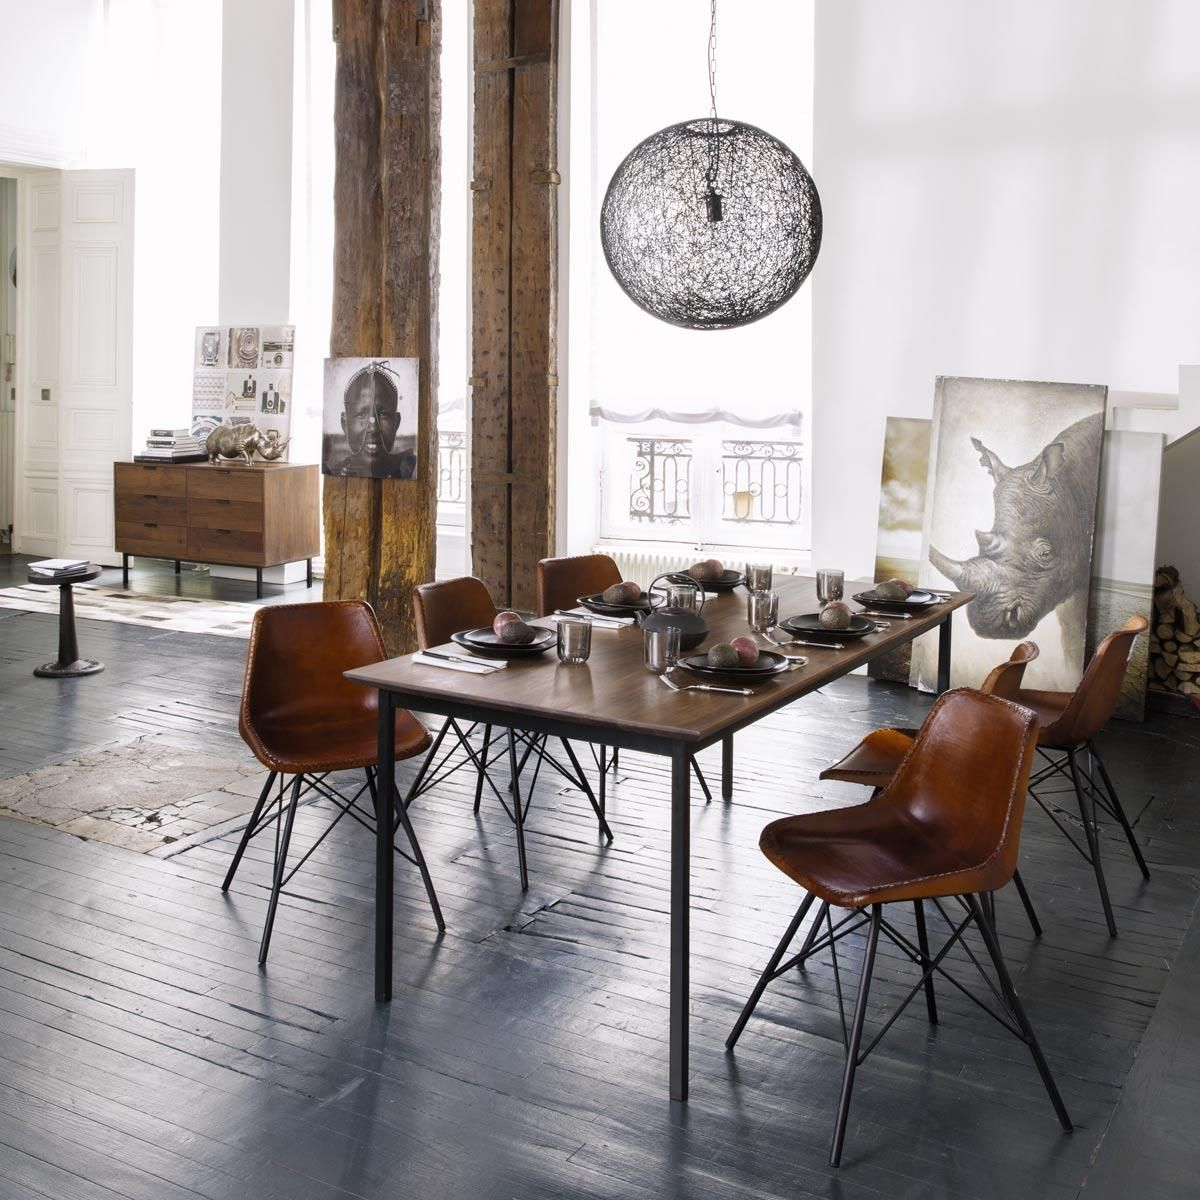 stuhl im industrial stil aus leder braun styleguide home st hle esszimmer und vintage st hle. Black Bedroom Furniture Sets. Home Design Ideas